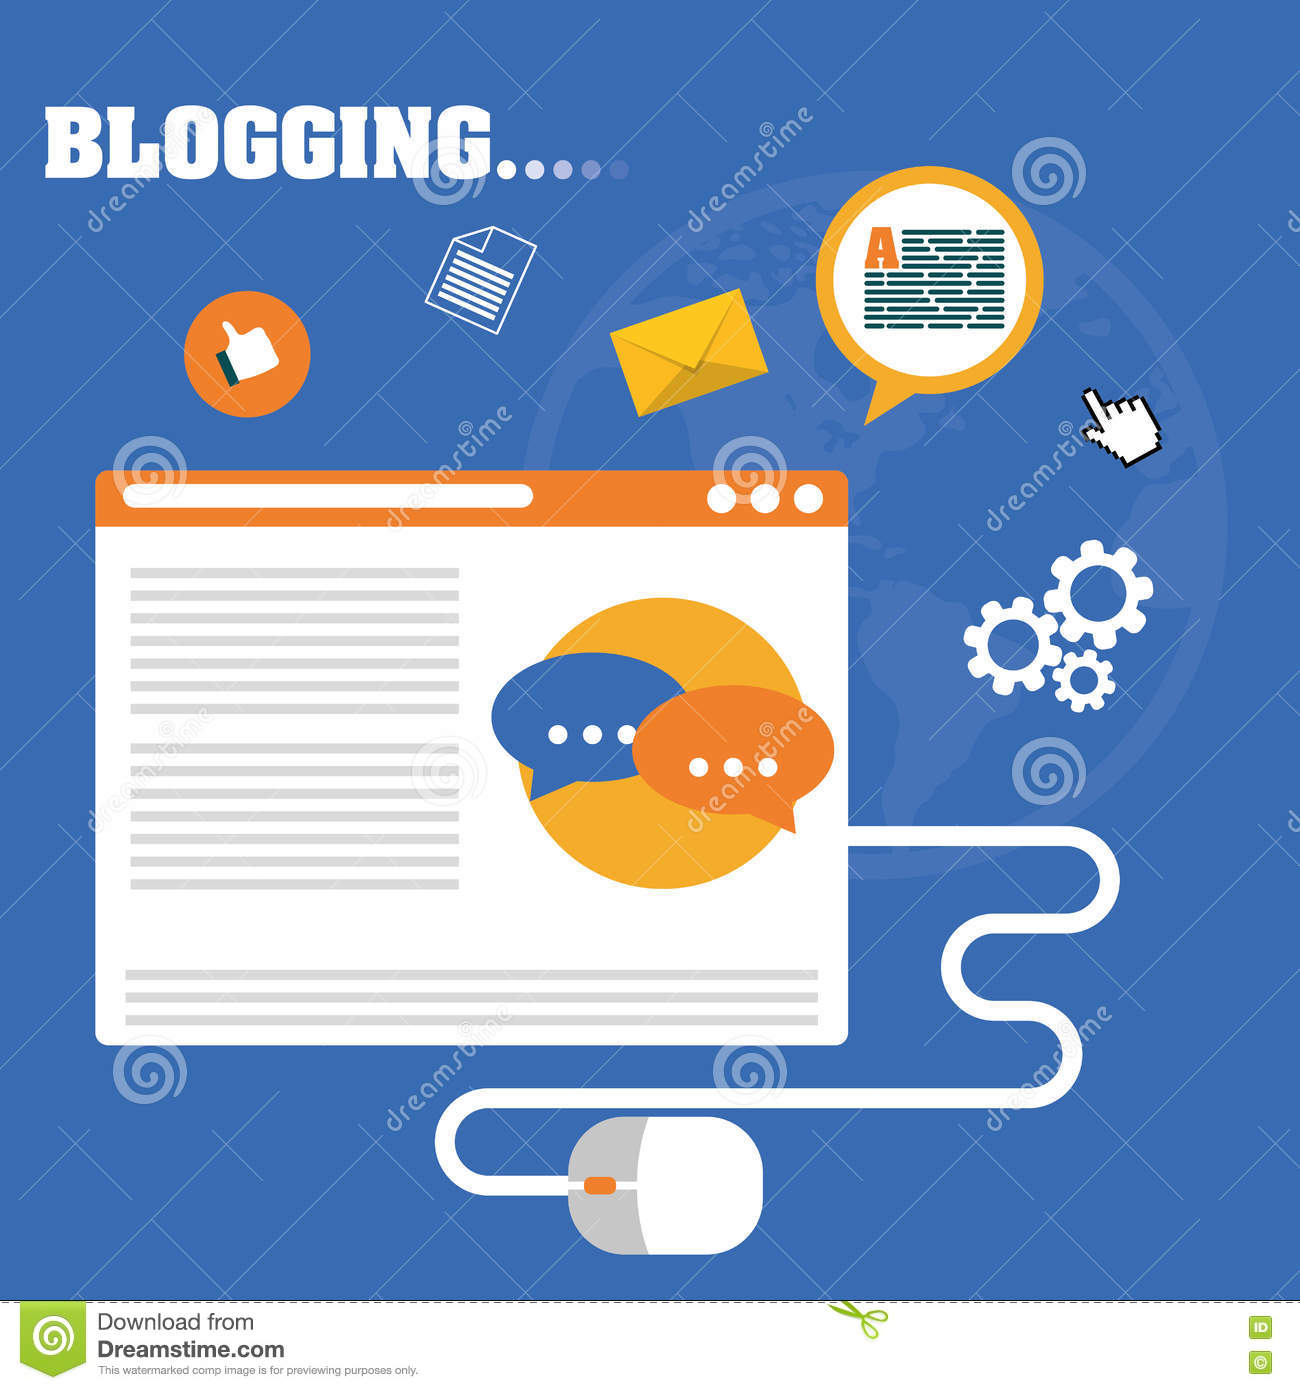 Blog, blogging and blogglers theme